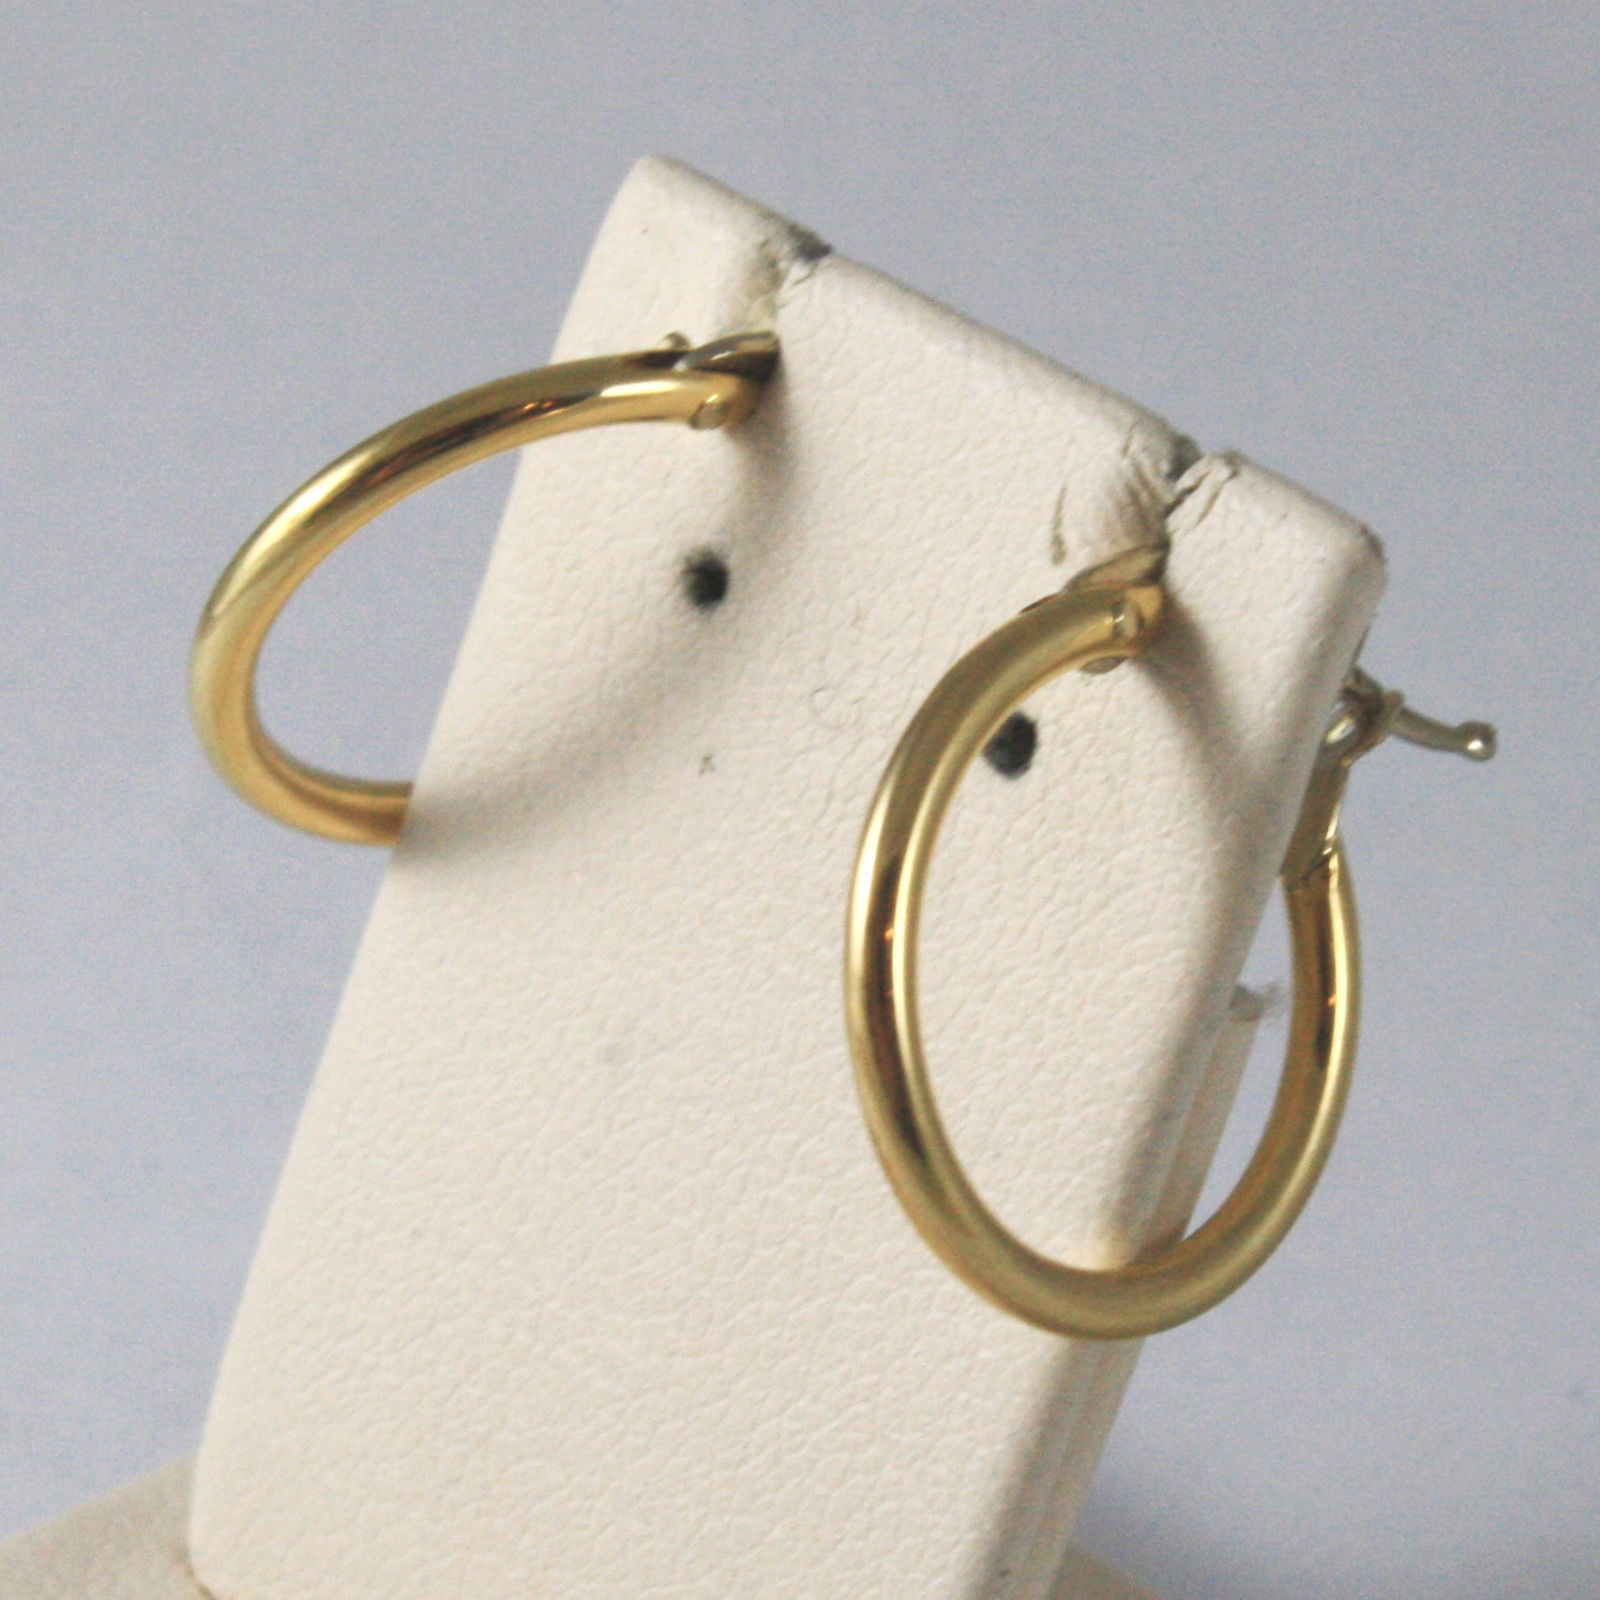 SOLID 18KT. YELLOW GOLD CIRCLE TUBE EARRINGS DIAMETER 0,59 IN MADE IN ITALY 18K